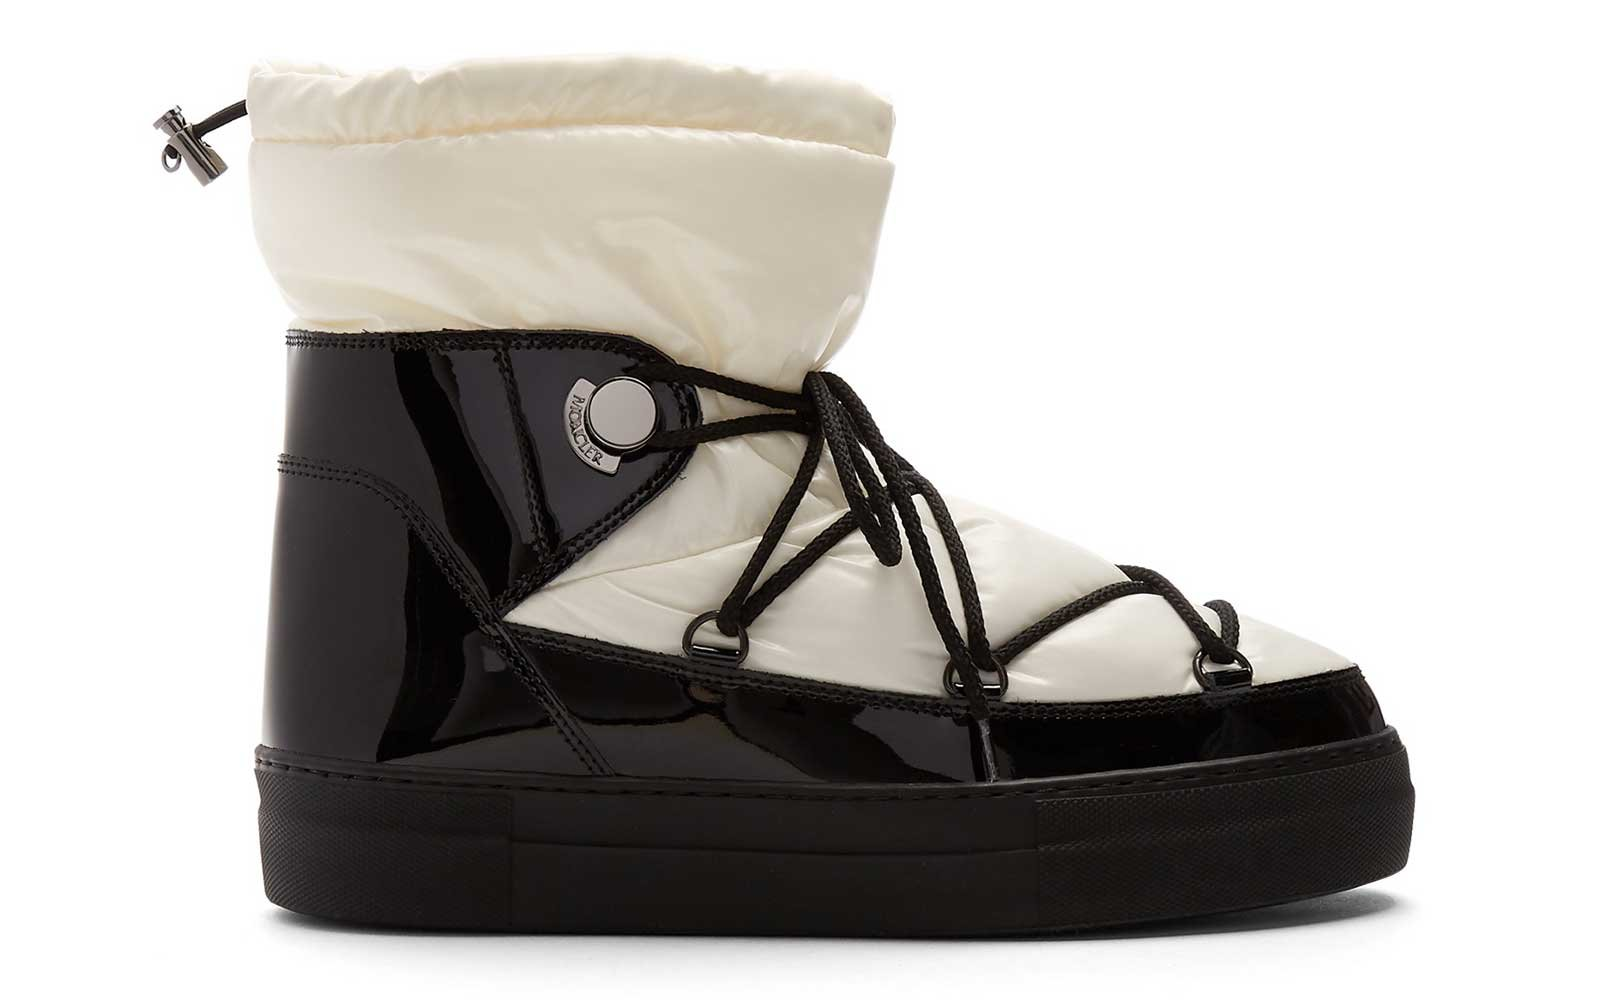 Nylon on black patent leather boots by Moncler